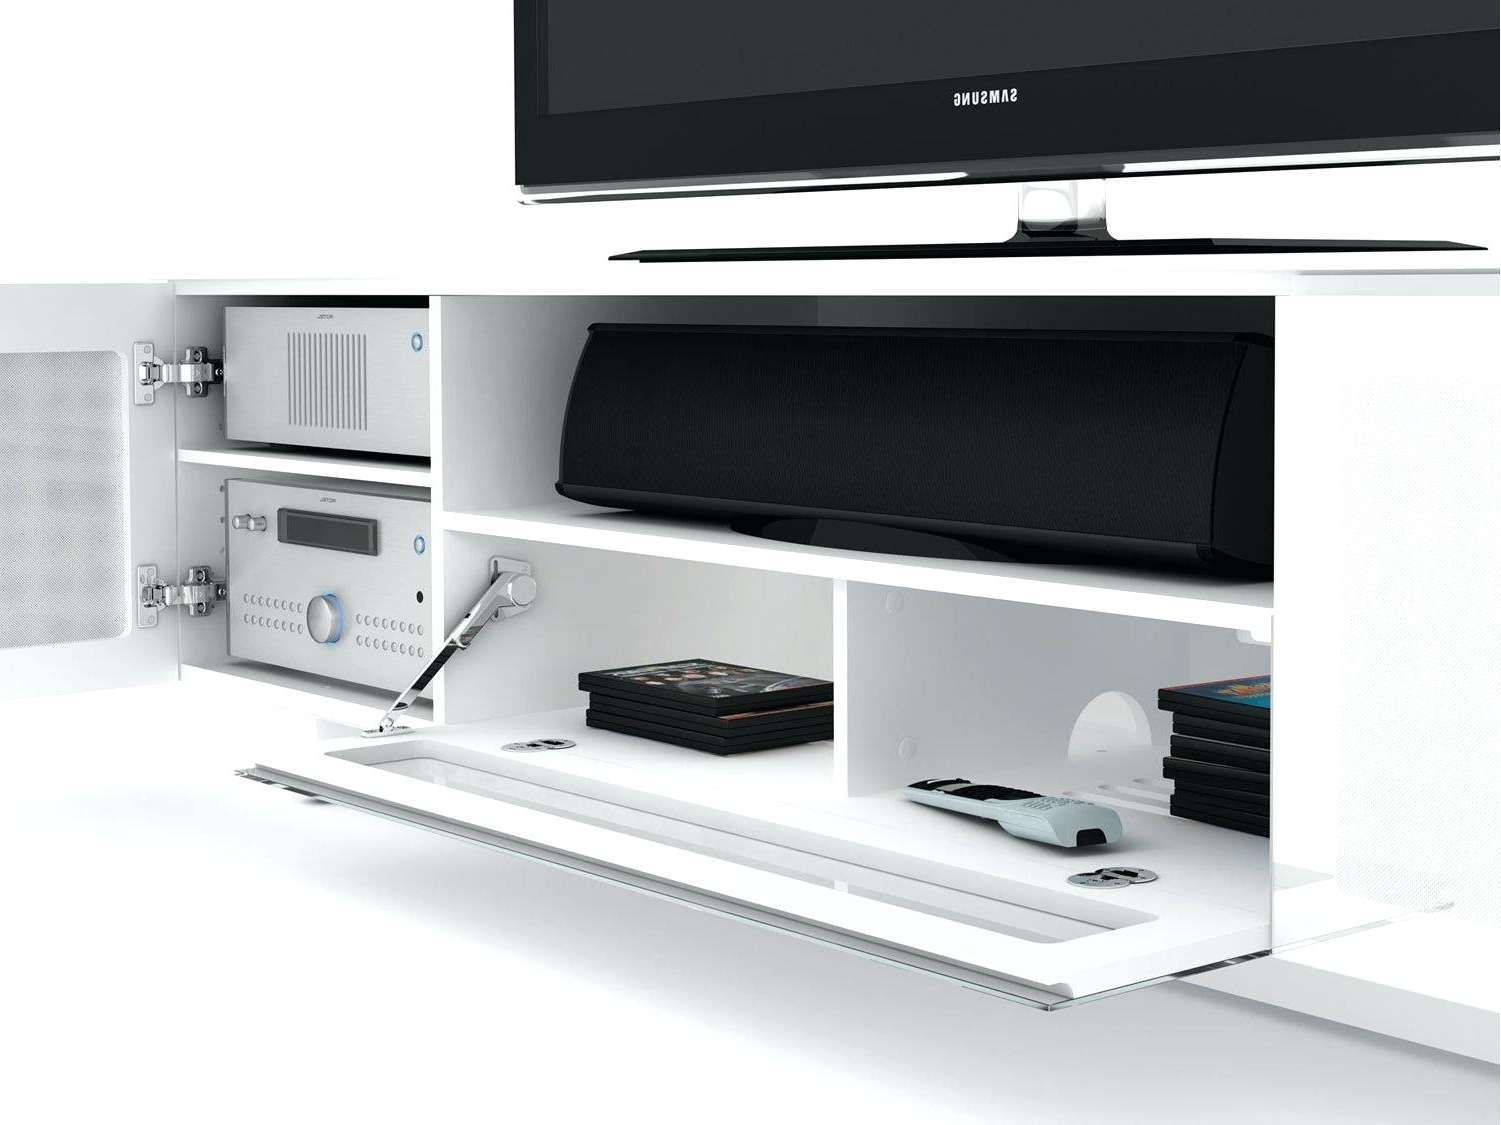 Tv Stand : Glossy White Tv Stand Gloss With Led Lights Glossy Pertaining To Glossy White Tv Stands (View 13 of 15)